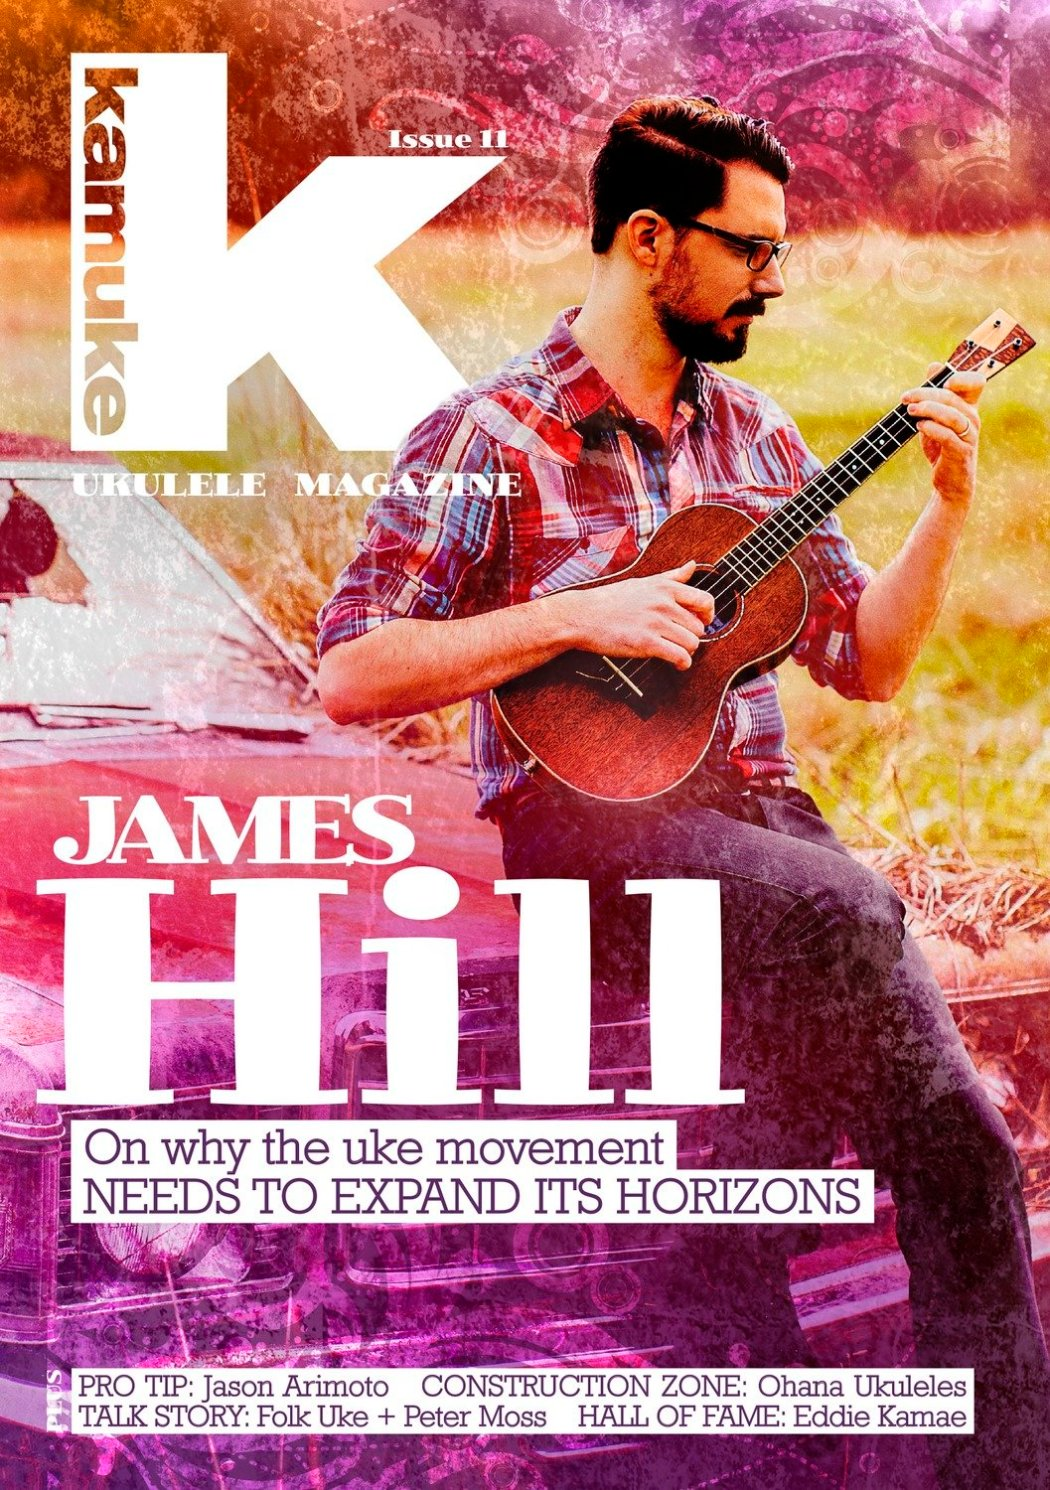 KAMUKE Issue 11